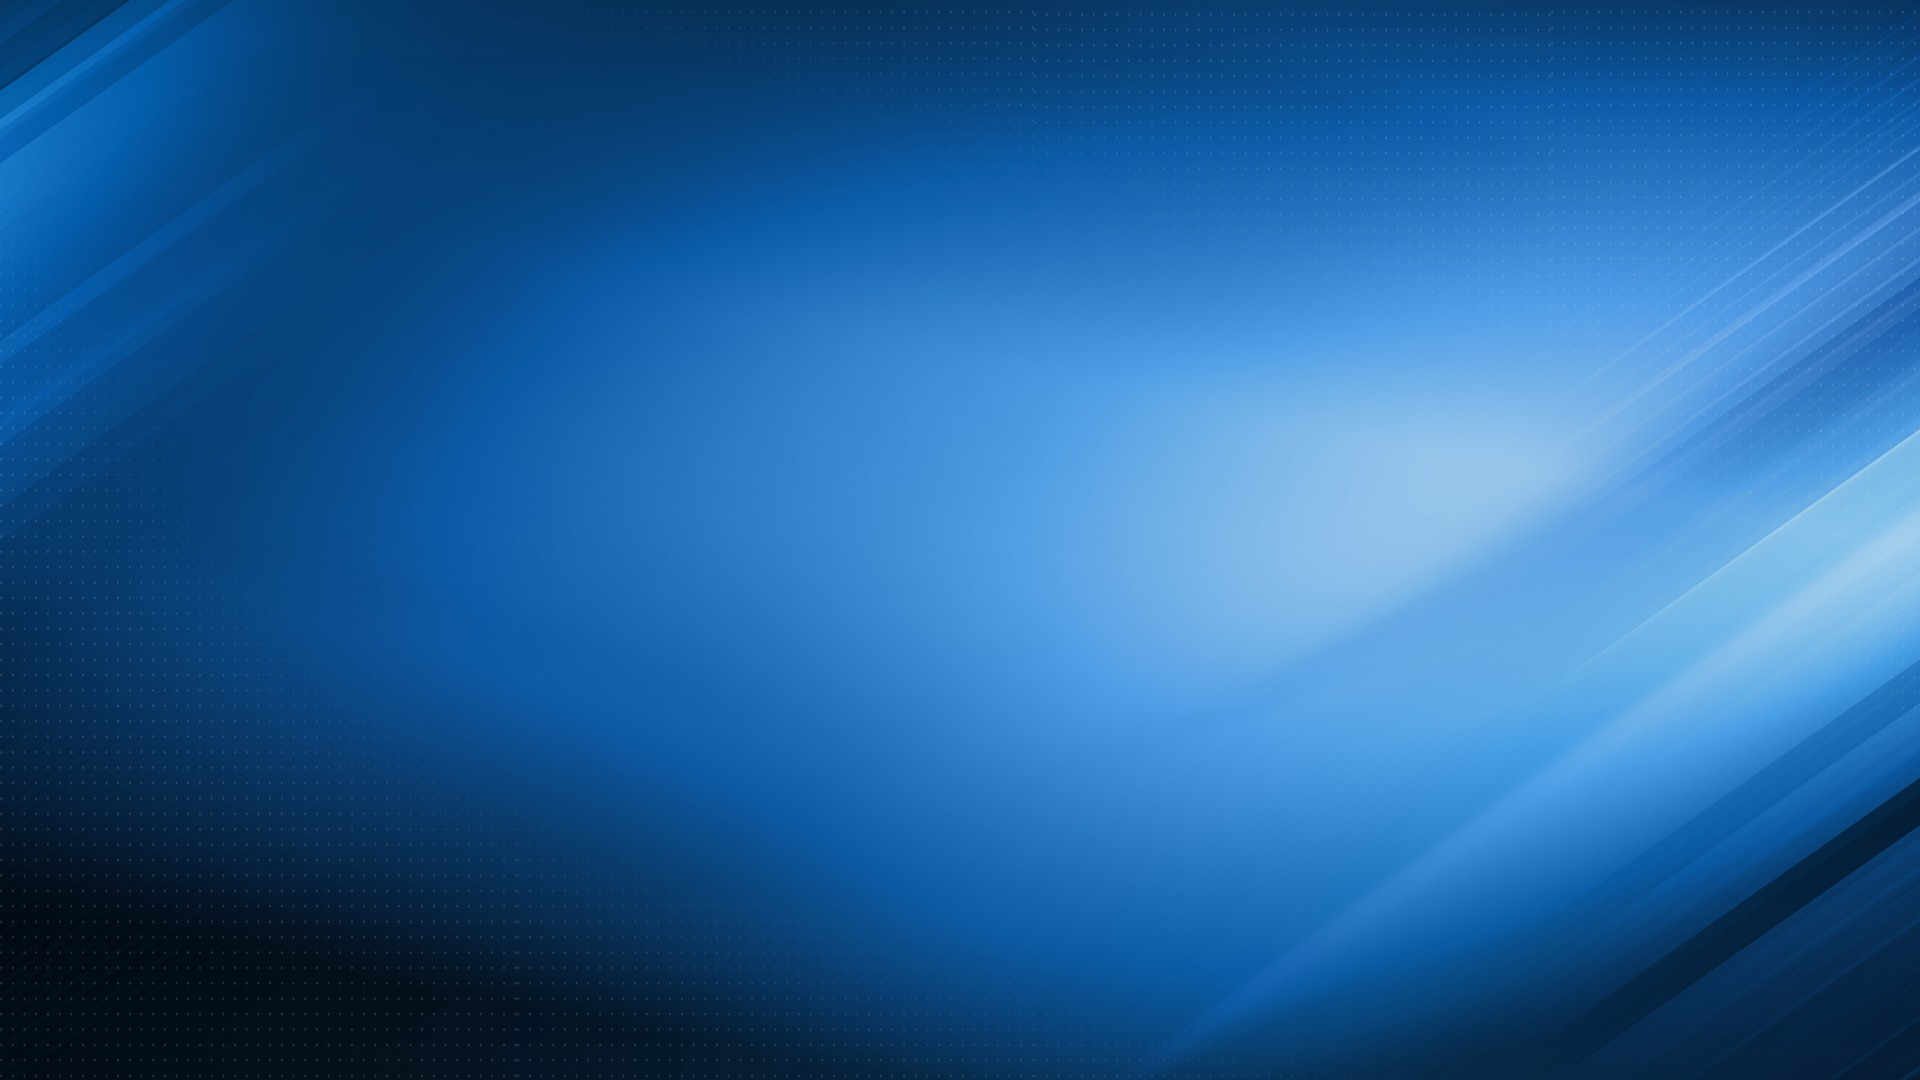 Blue abstraction, background on the desktop